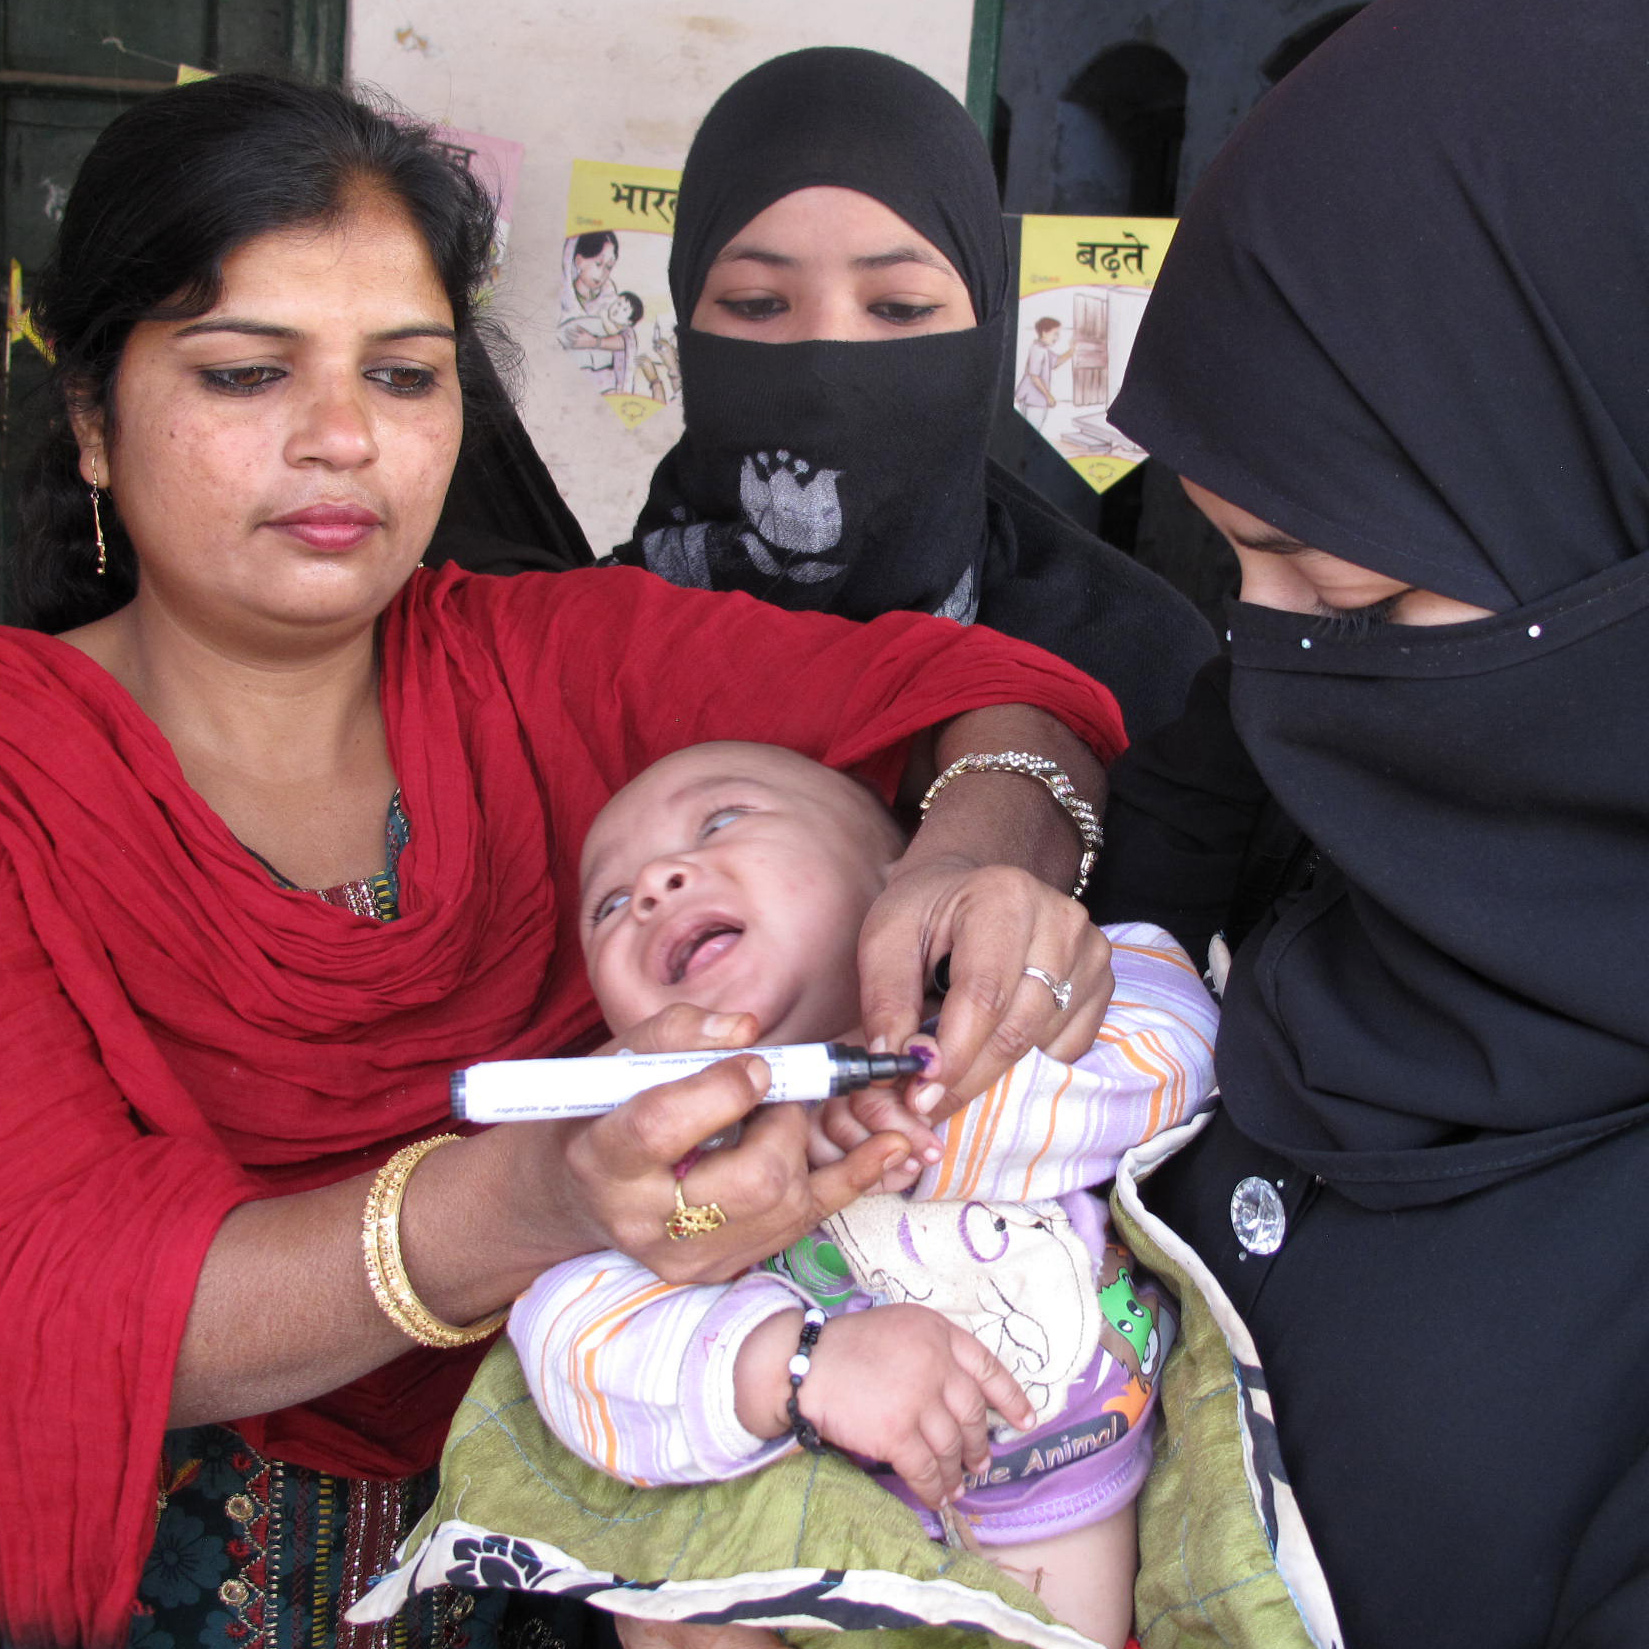 A health worker marks a baby's finger after giving her a polio vaccine in Moradabad, India.